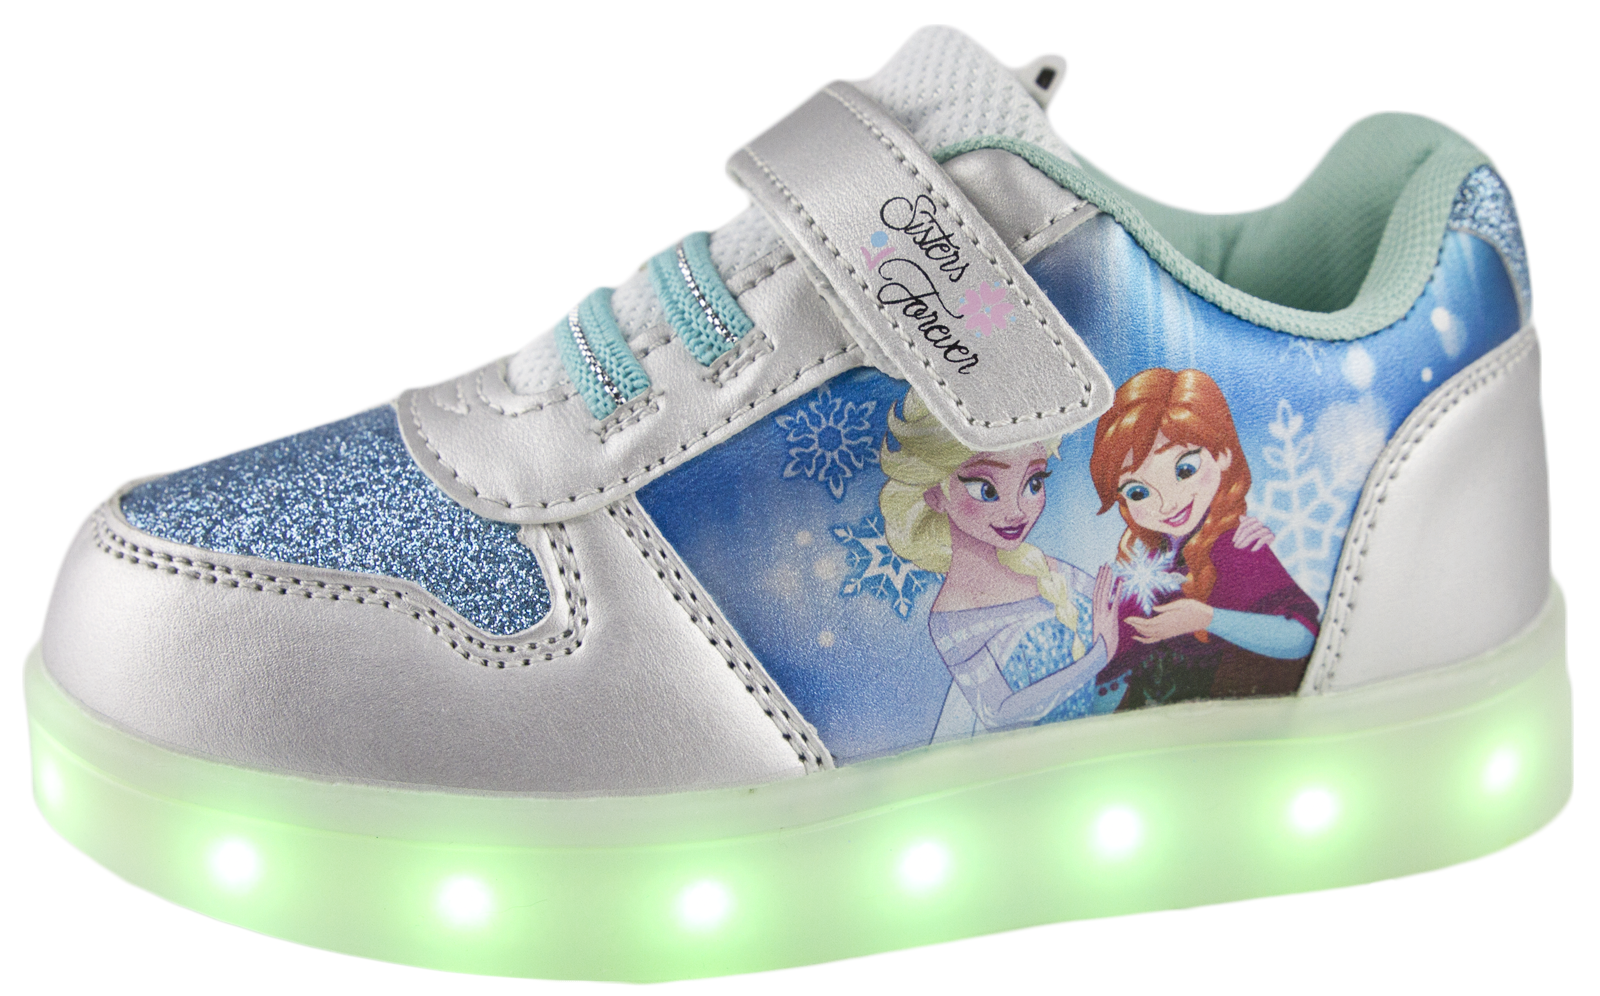 Frozen Elsa Light Up Shoes Uk